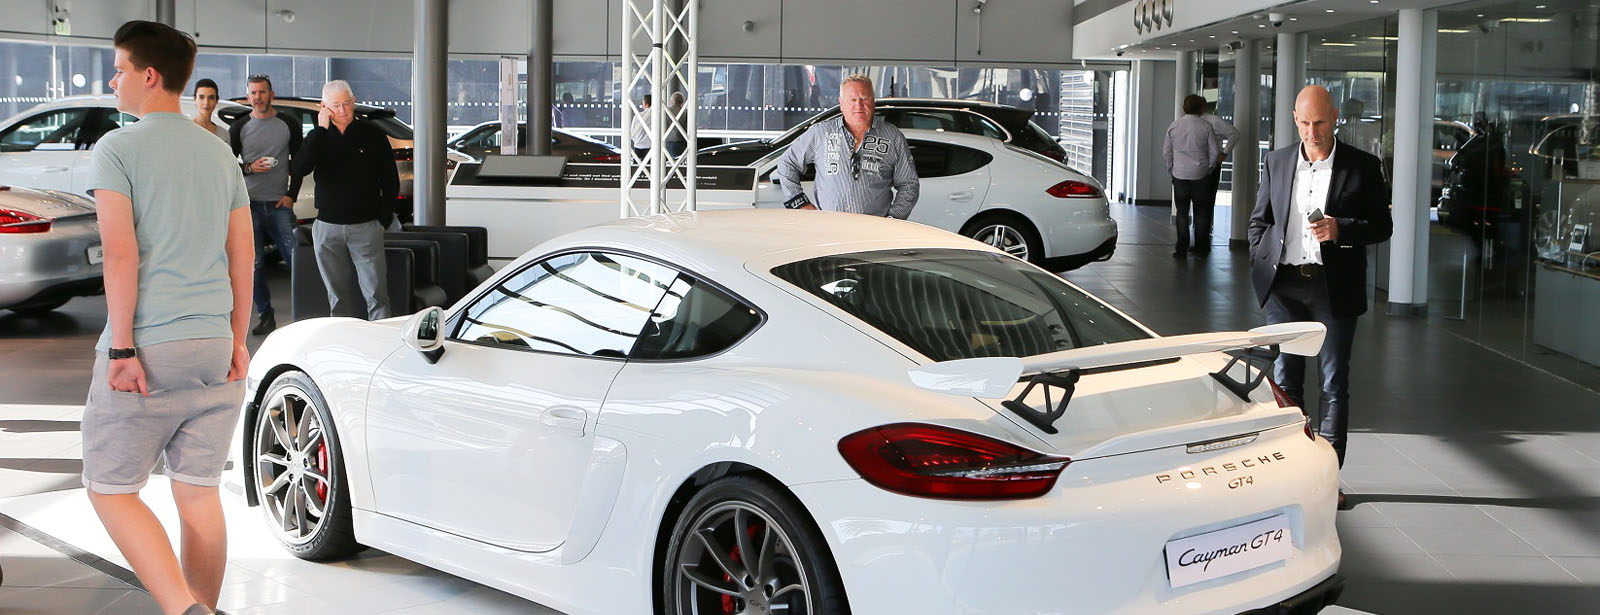 Porsche The New Cayman Gt4 In South Africa Porsche Middle East